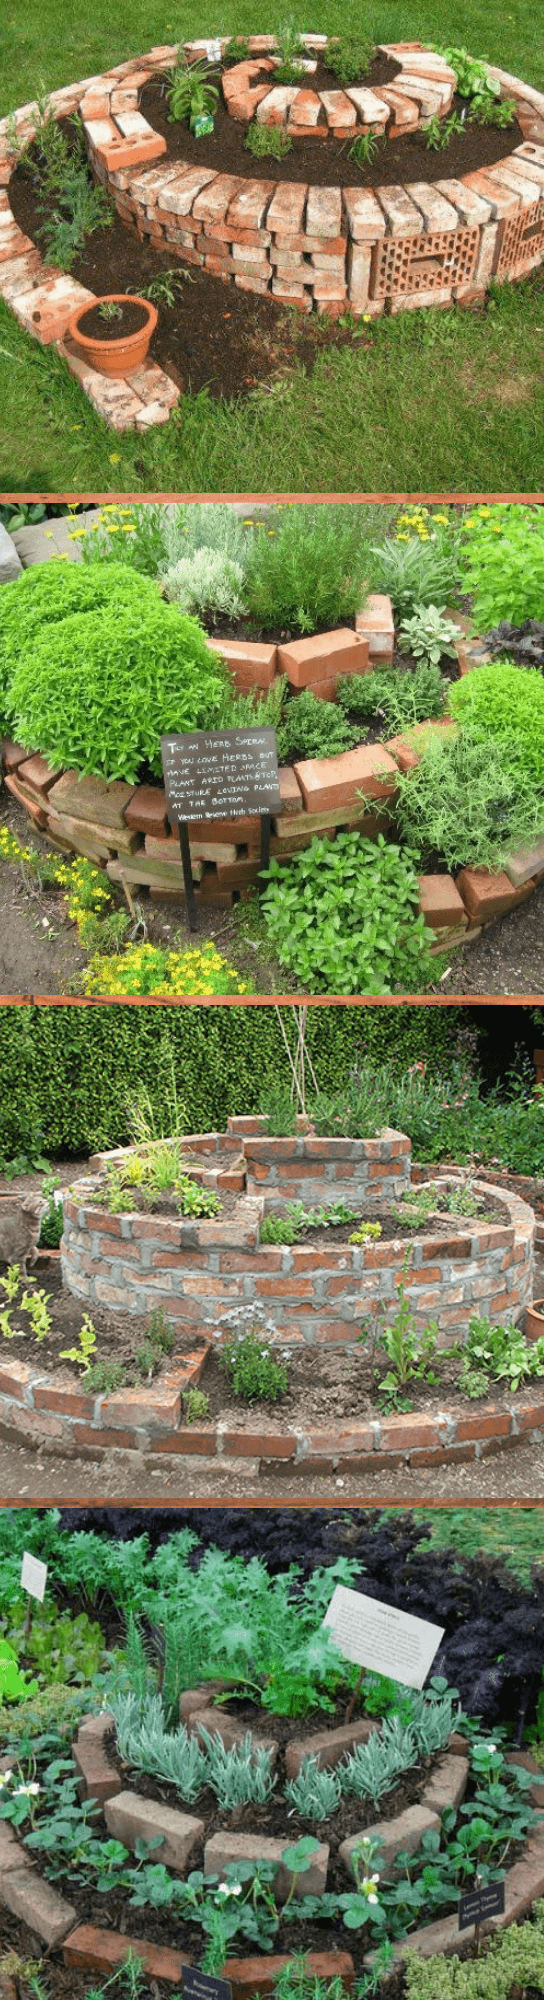 How to build a herb spiral with bricks